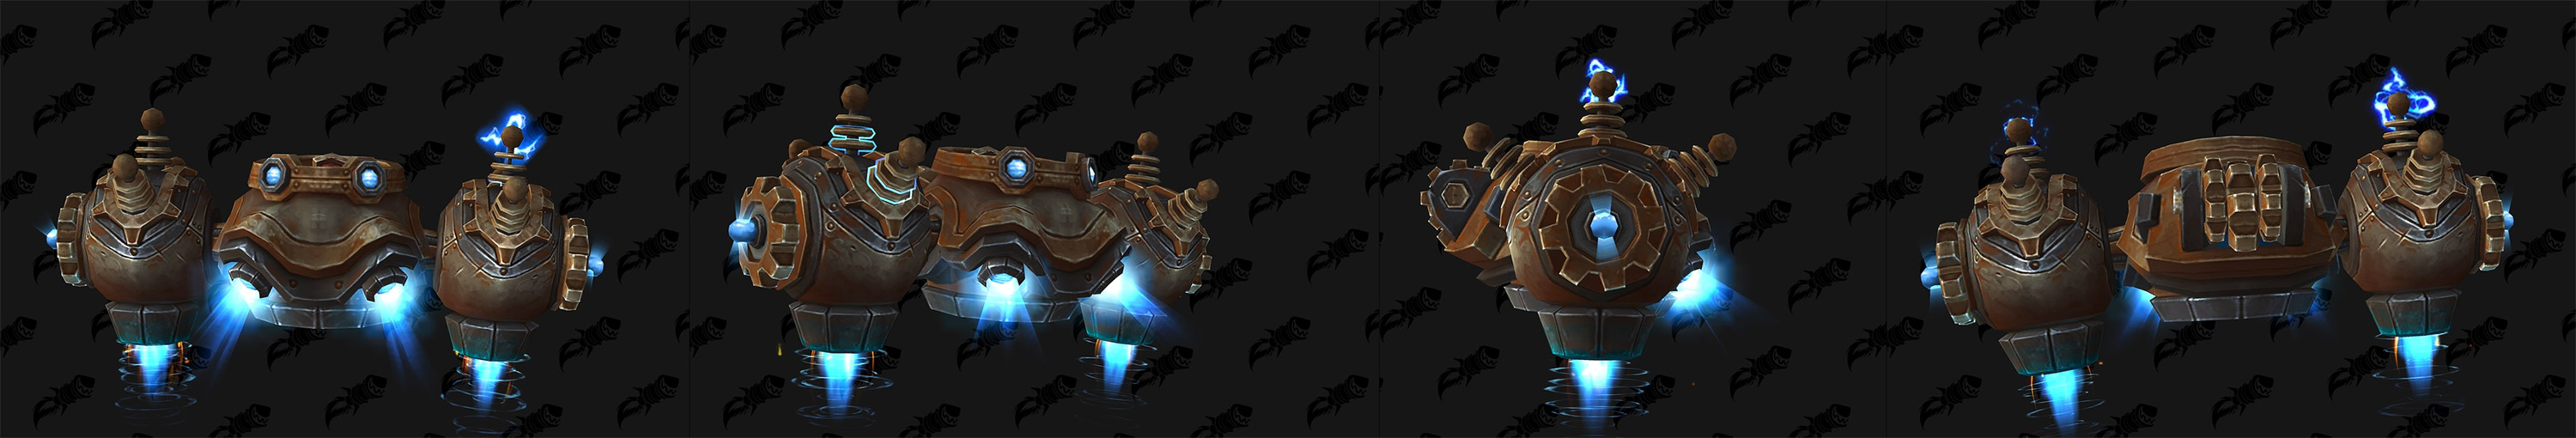 Modèle de machine volante au patch 8.2